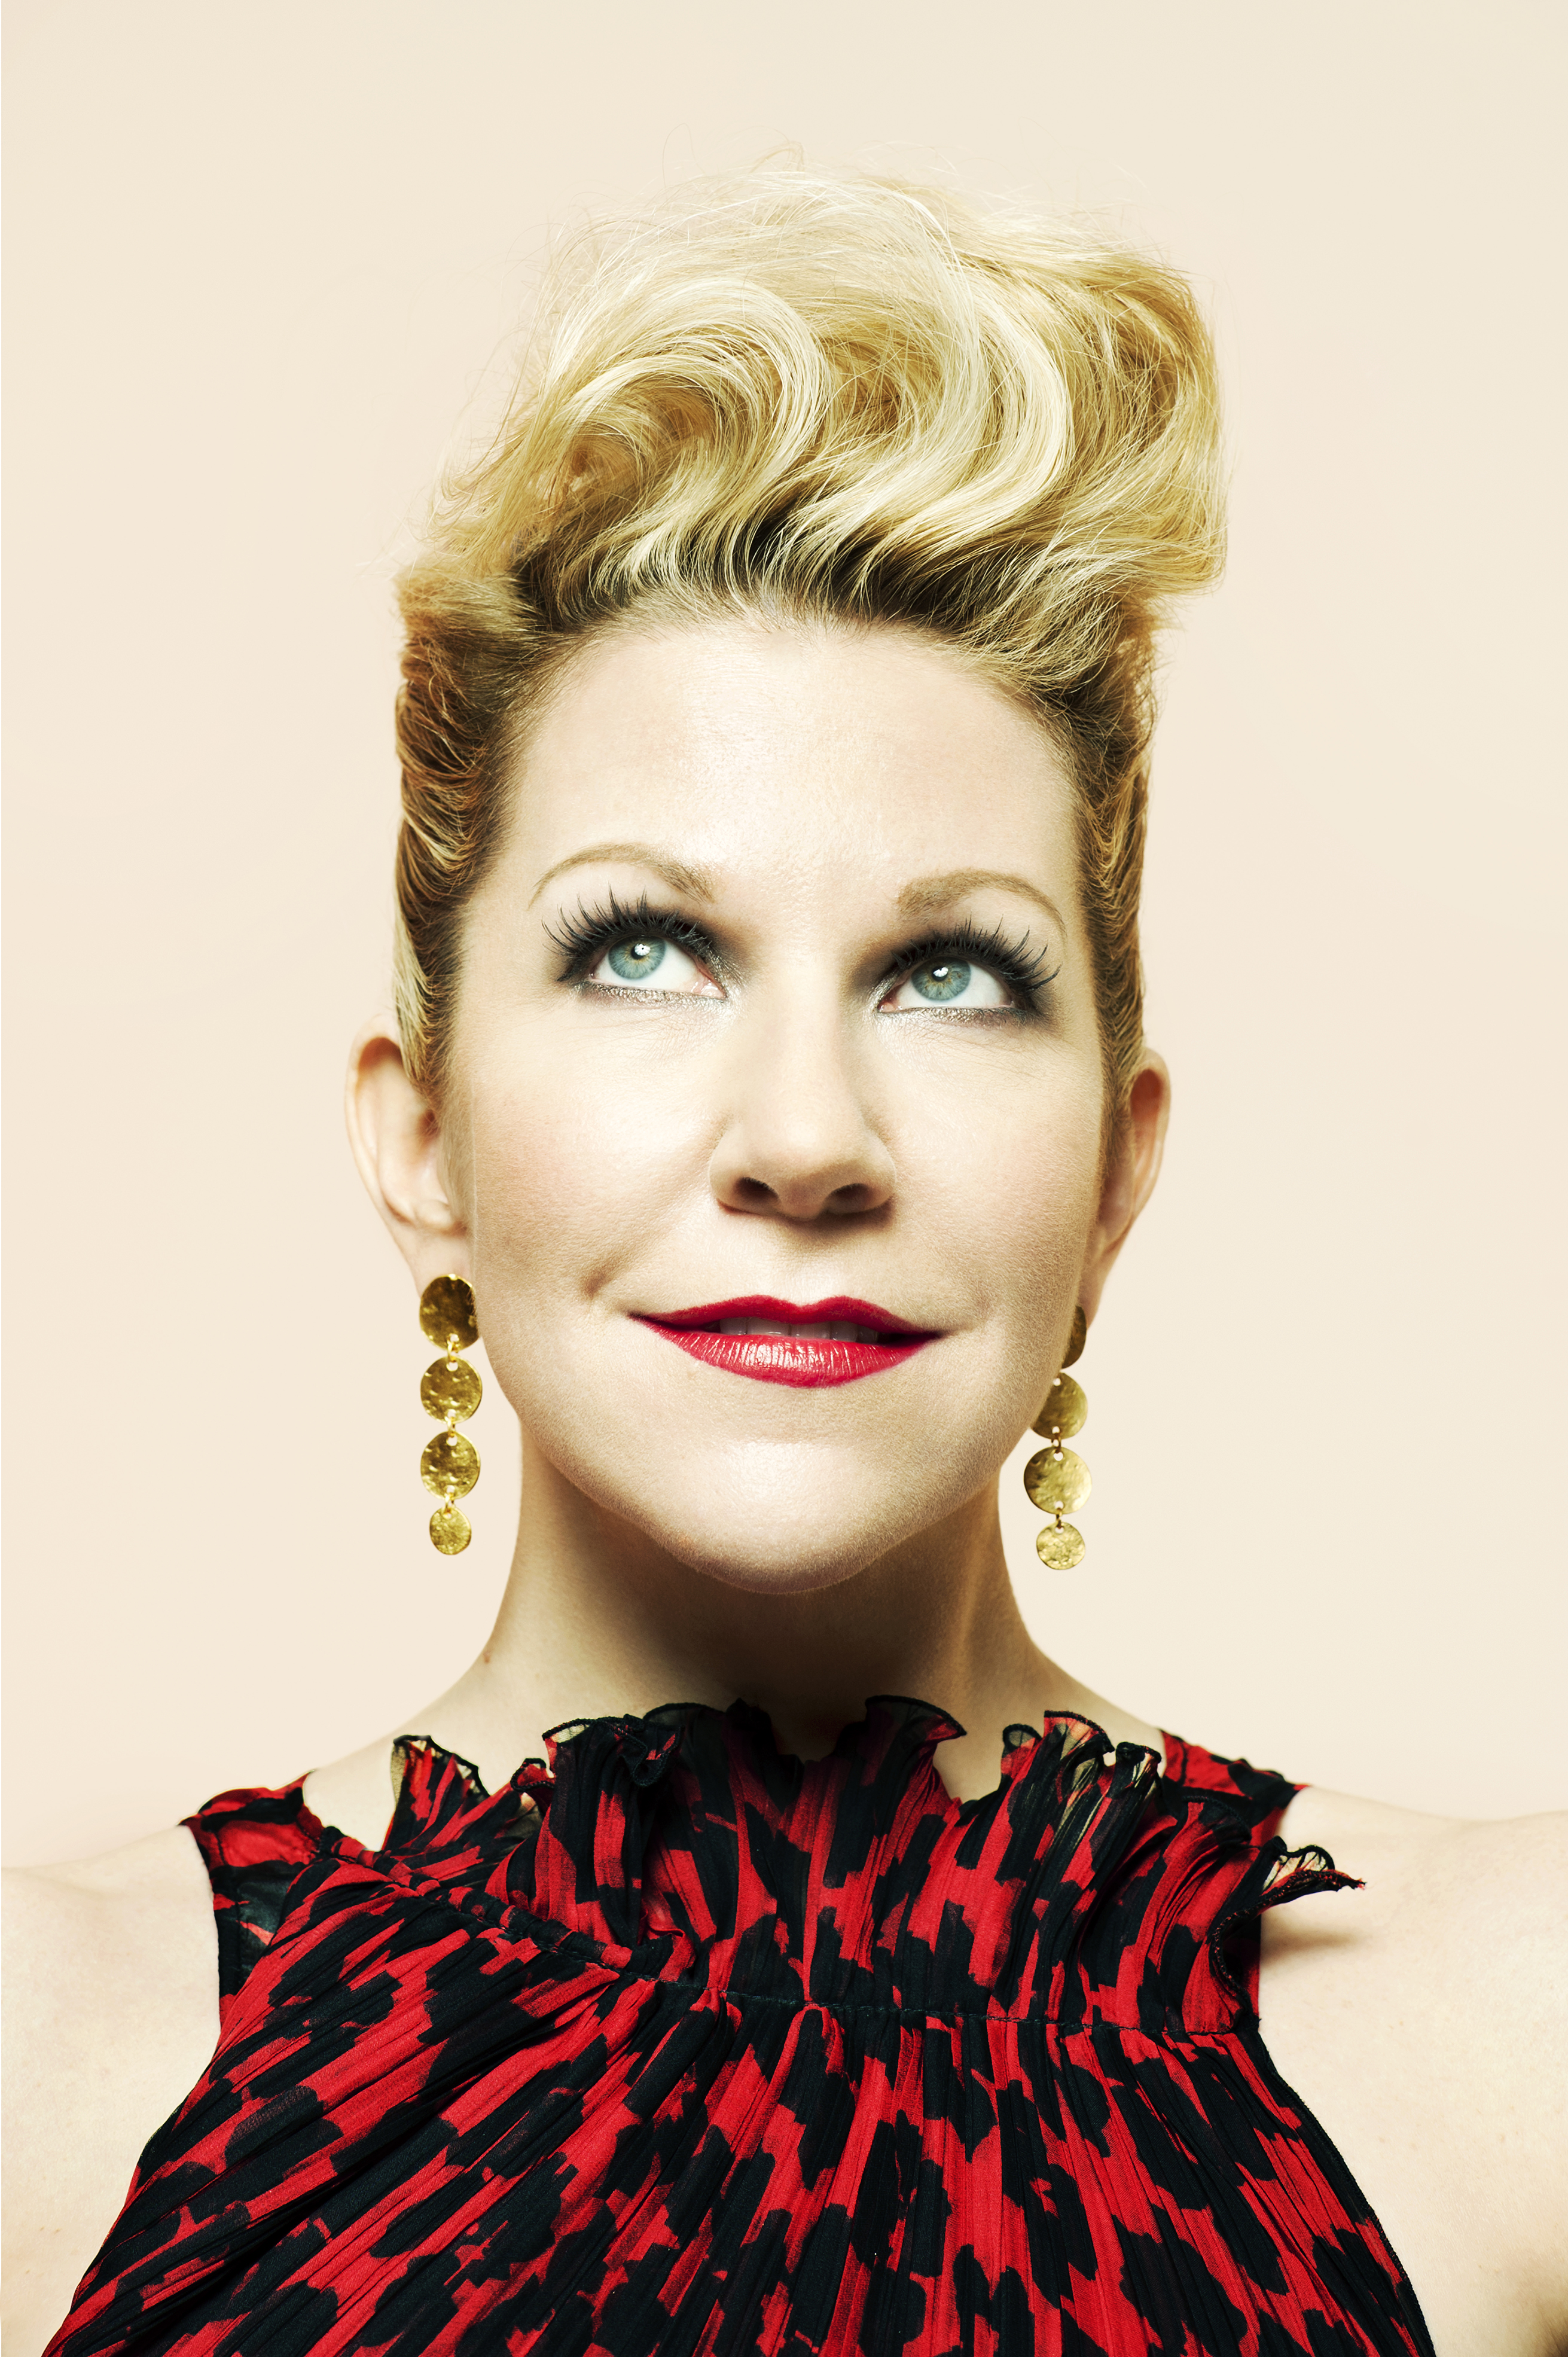 Joyce DiDonato conducted a master class with vocal performance students on Wednesday, Sept. 21, followed by her performance on Thursday, Sept. 22. Kansas native DiDonato said she remembers what it's like to study music at college. (Pari Dukovic)